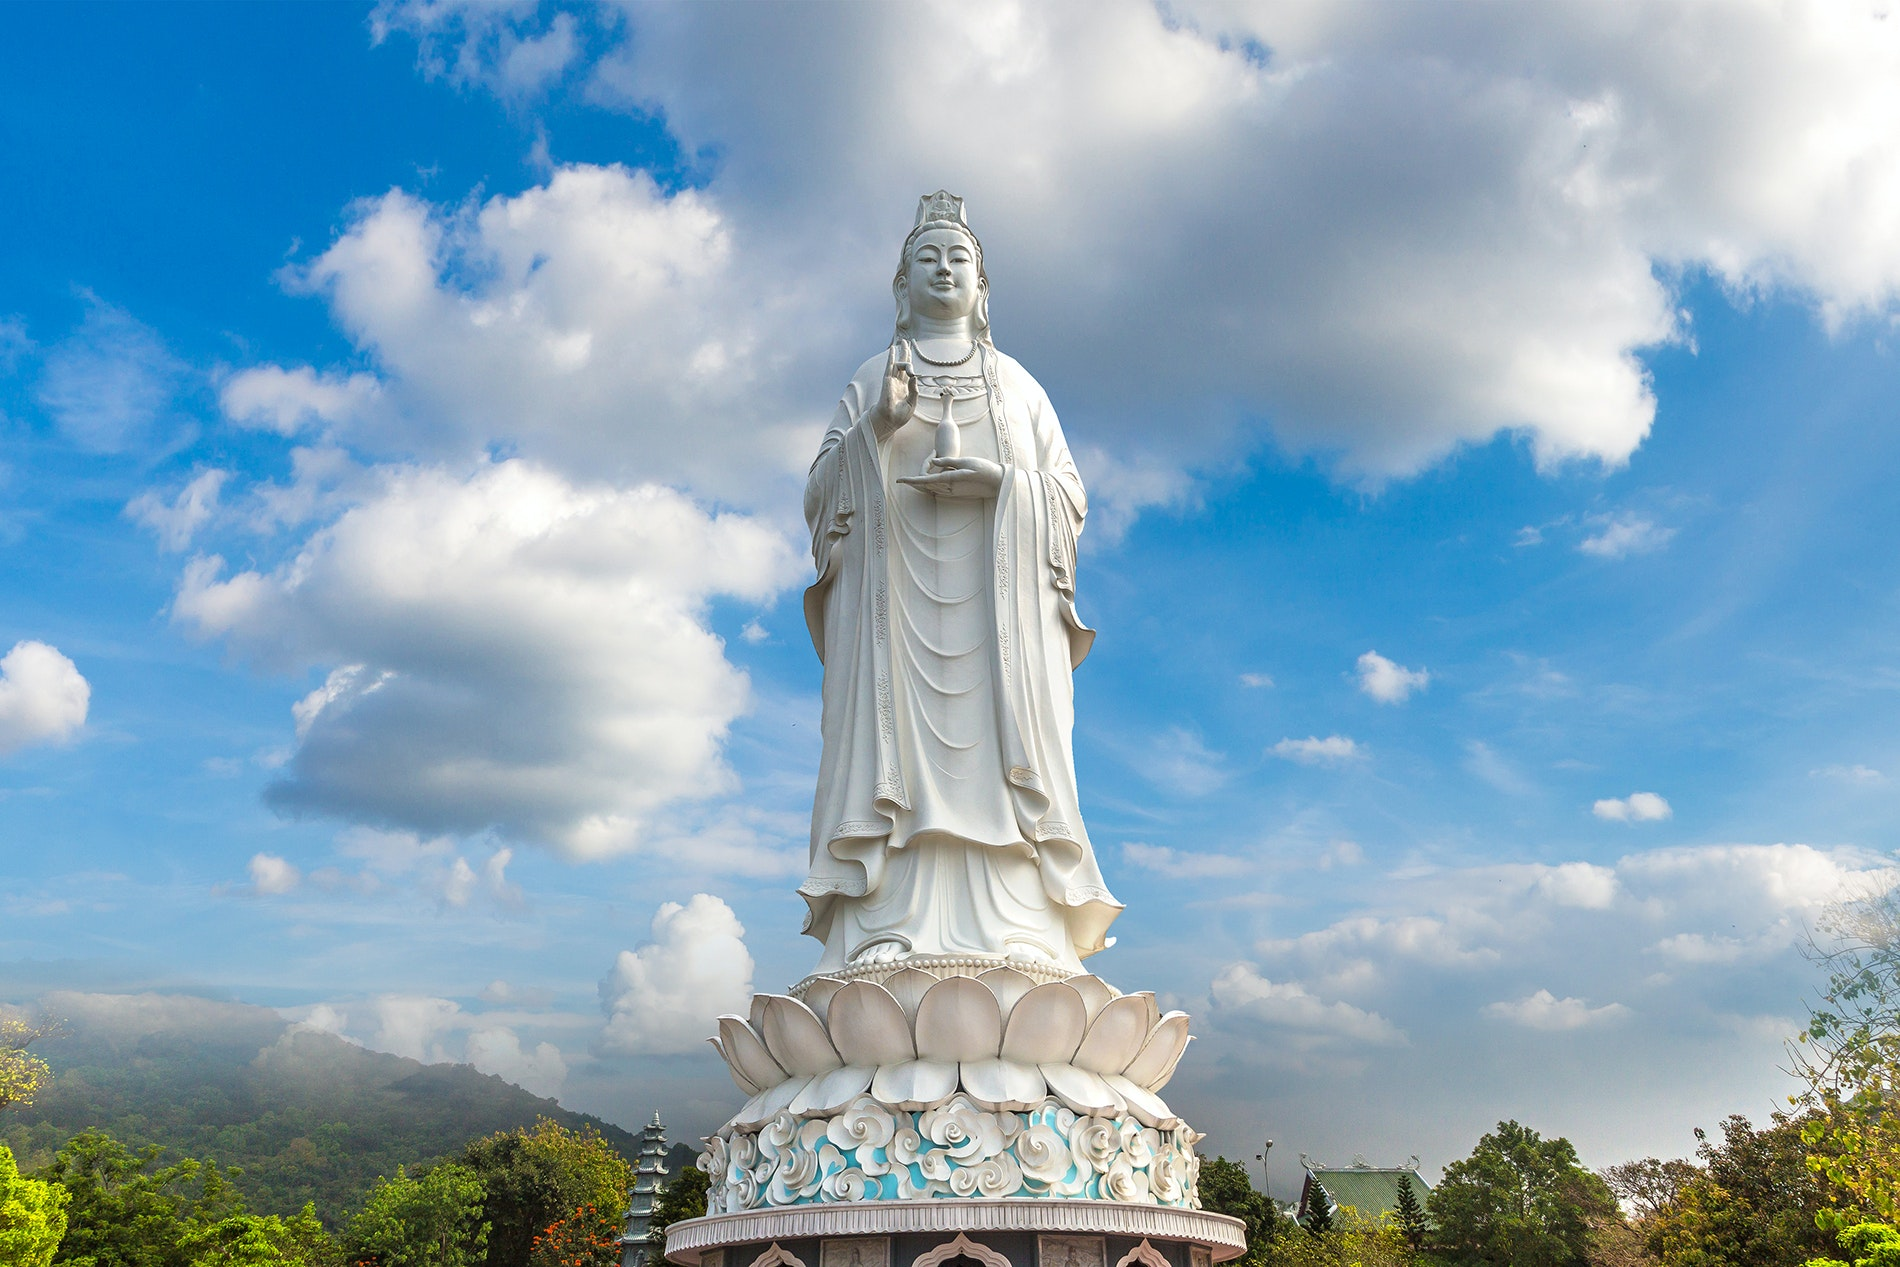 Lady Buddha, at the Linh Ung Pagoda, measures about 230 feet from her head to her lotus leaf base.